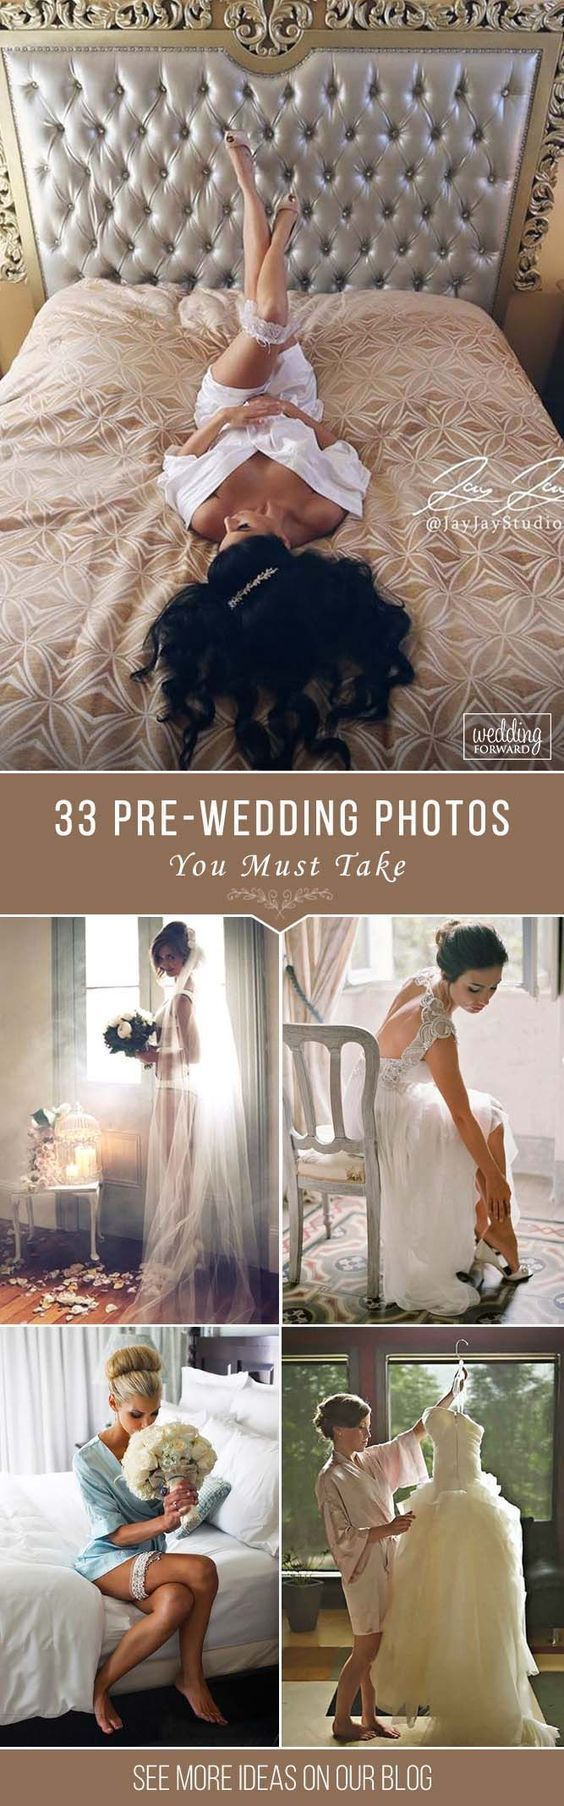 Capturing good pictures on your wedding day is very important, so you have to be prepared. In our pre-wedding photos we will give you some inspiration! -- Check out this great tip #Wedding #weddingphotos #weddingpictures